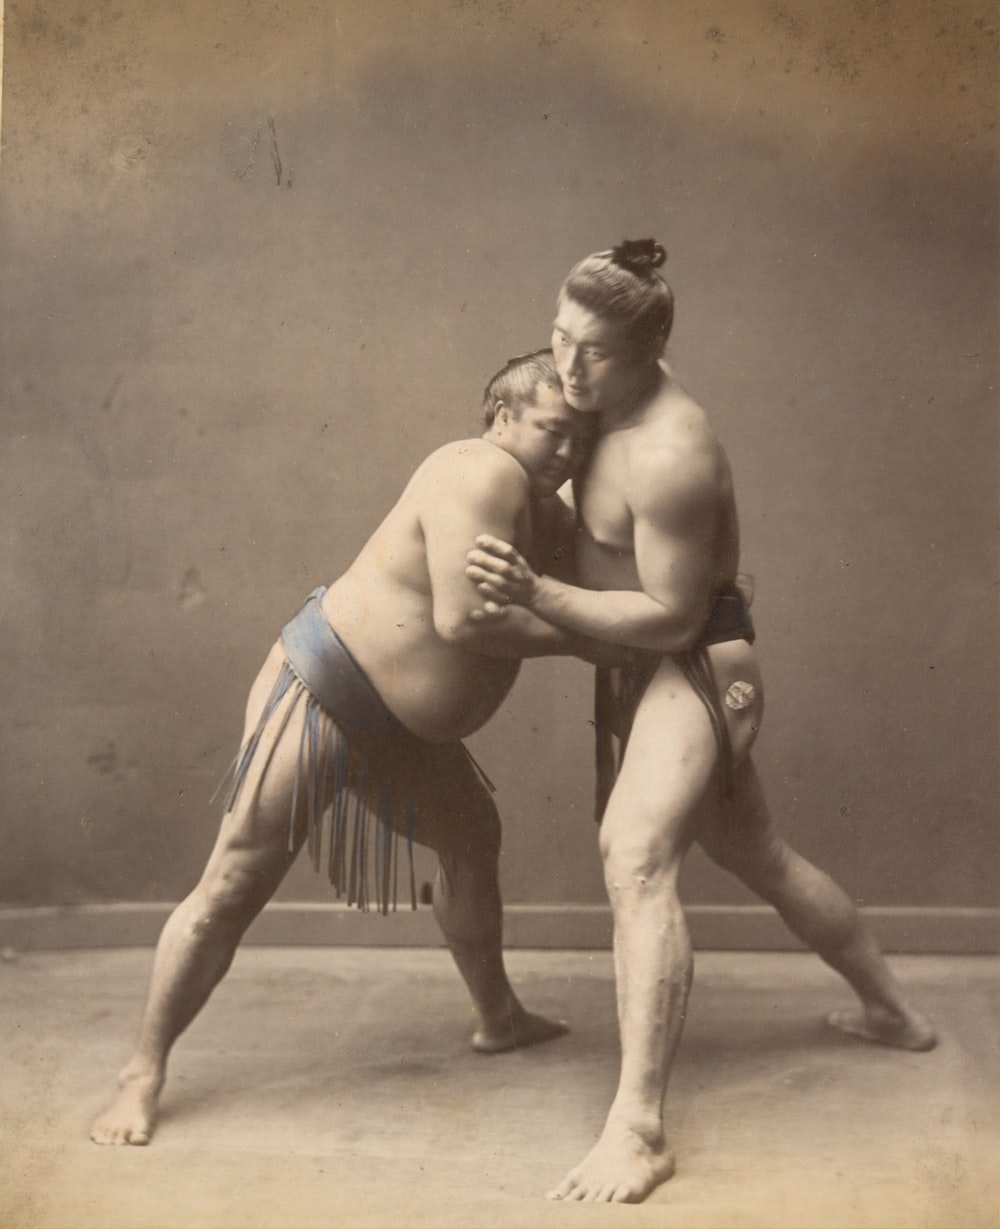 Historical image of sumo wrestlers in 1870